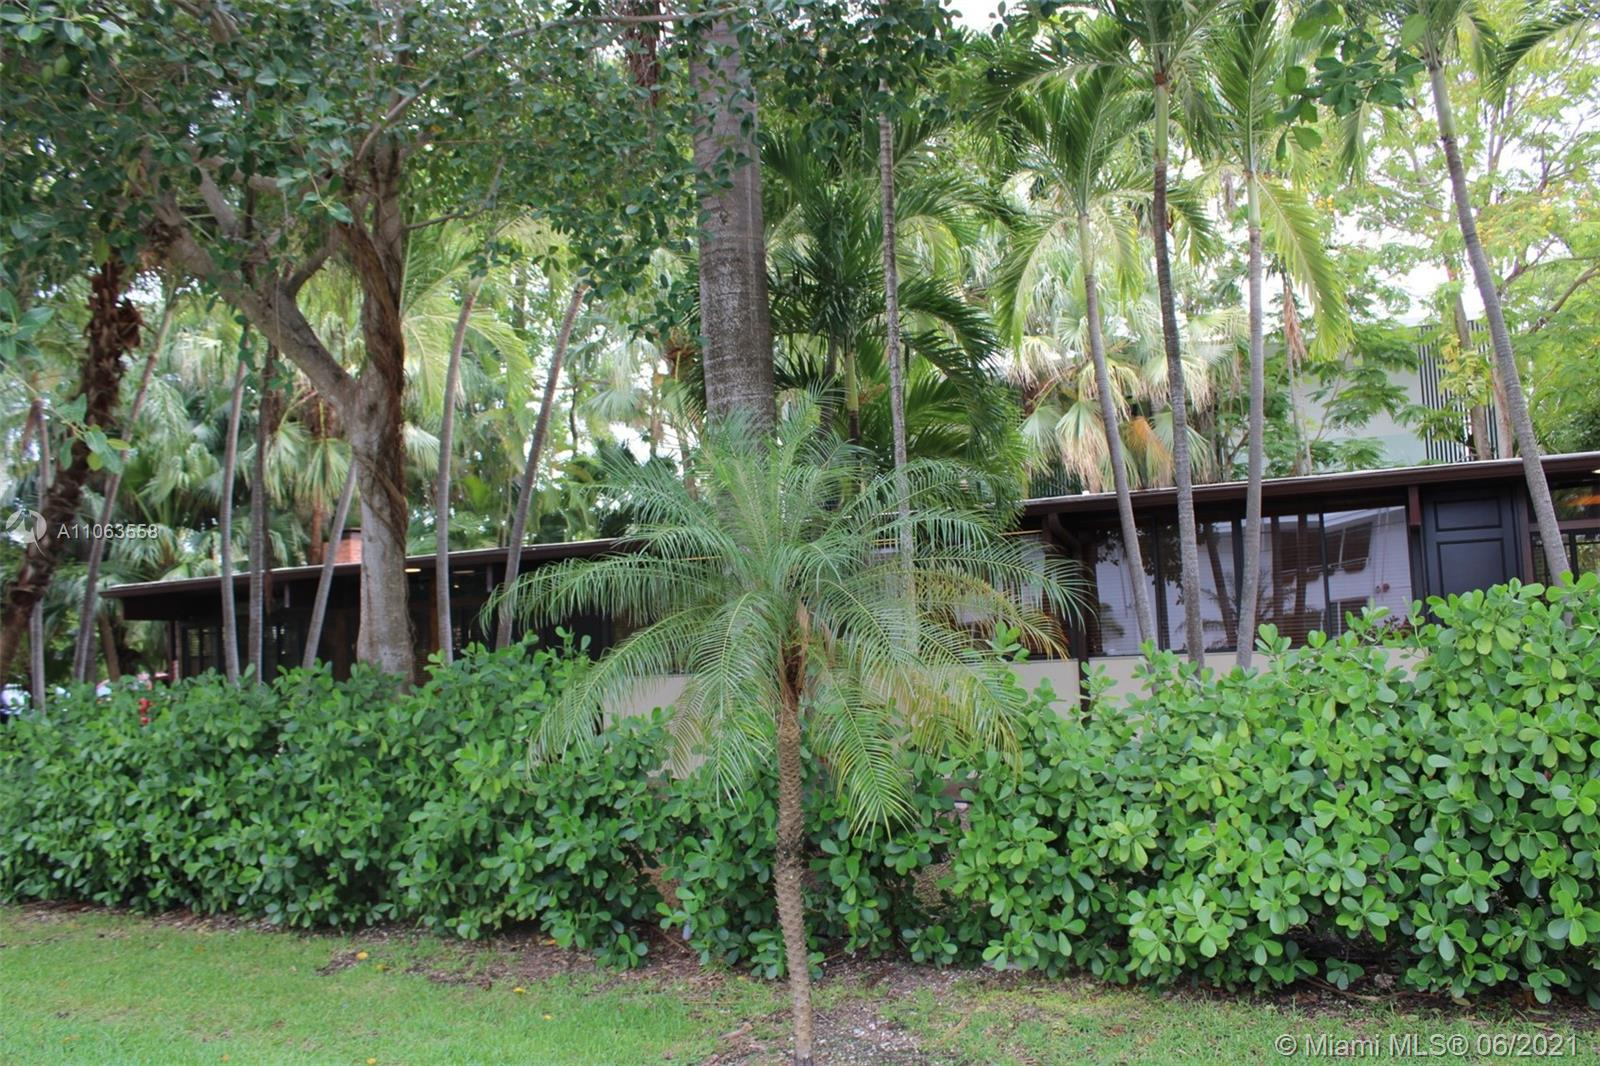 A BEAUTIFUL 3 BED 2 BATH IN HIBISCUS ISLAND ON A MASSIVE LOT. This is one of the few houses in Florida that was inspired by the designs of Frank Lloyd Wright, and sits in a gated neighborhood in the heart of Miami just minutes away from Downtown and Miami Beach. This is a must see.